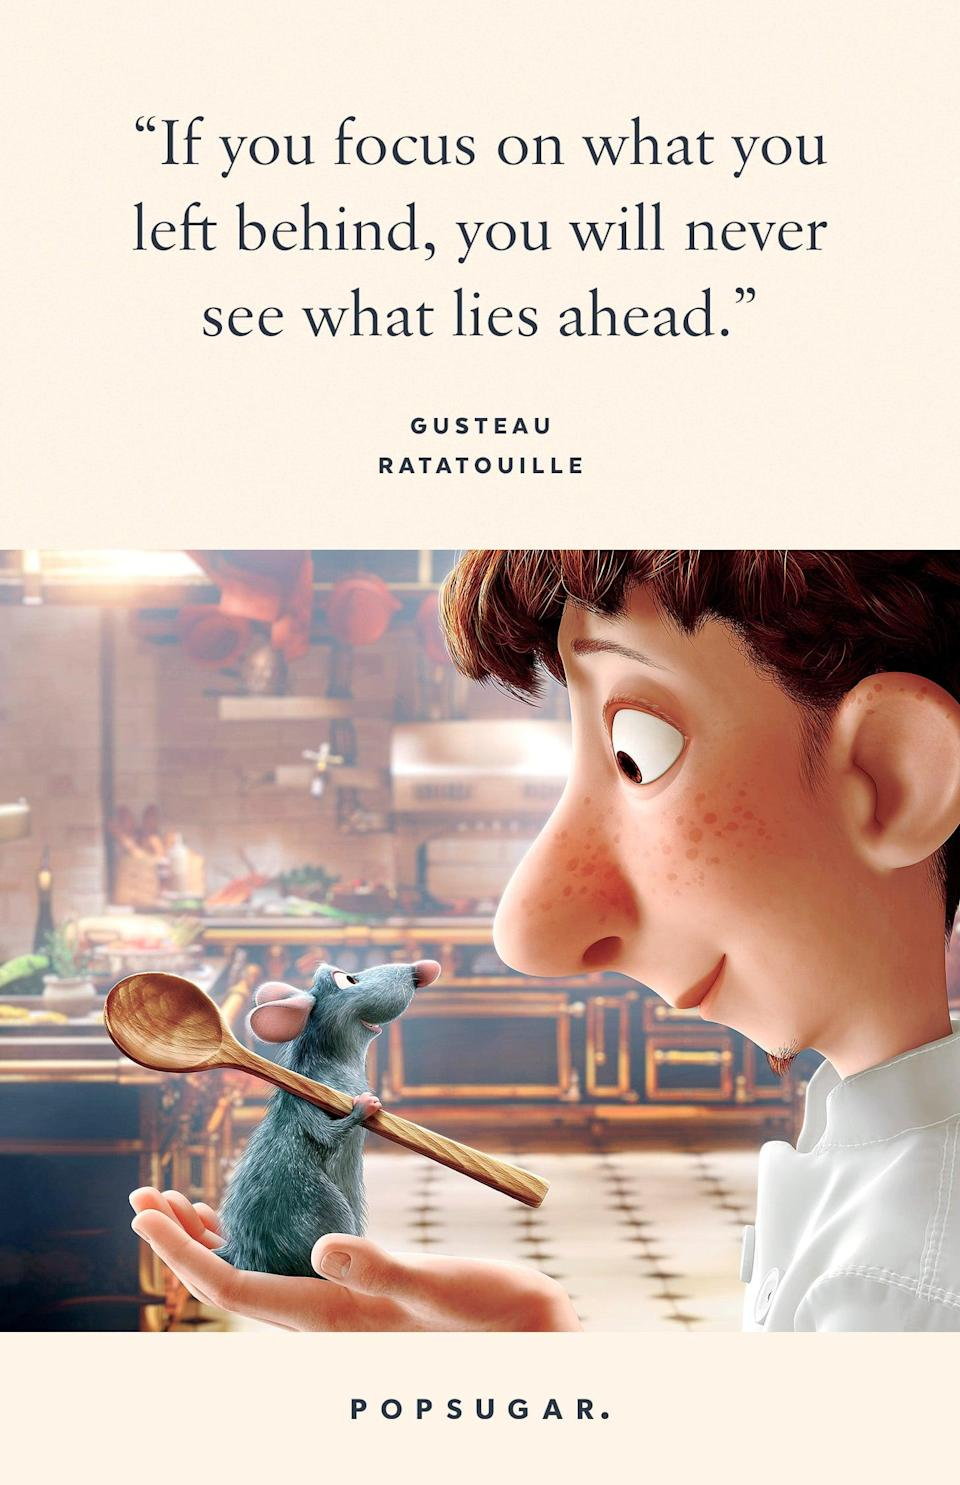 "<p>""If you focus on what you left behind, you will never see what lies ahead."" - Gusteau, <b>Ratatouille</b> </p>"